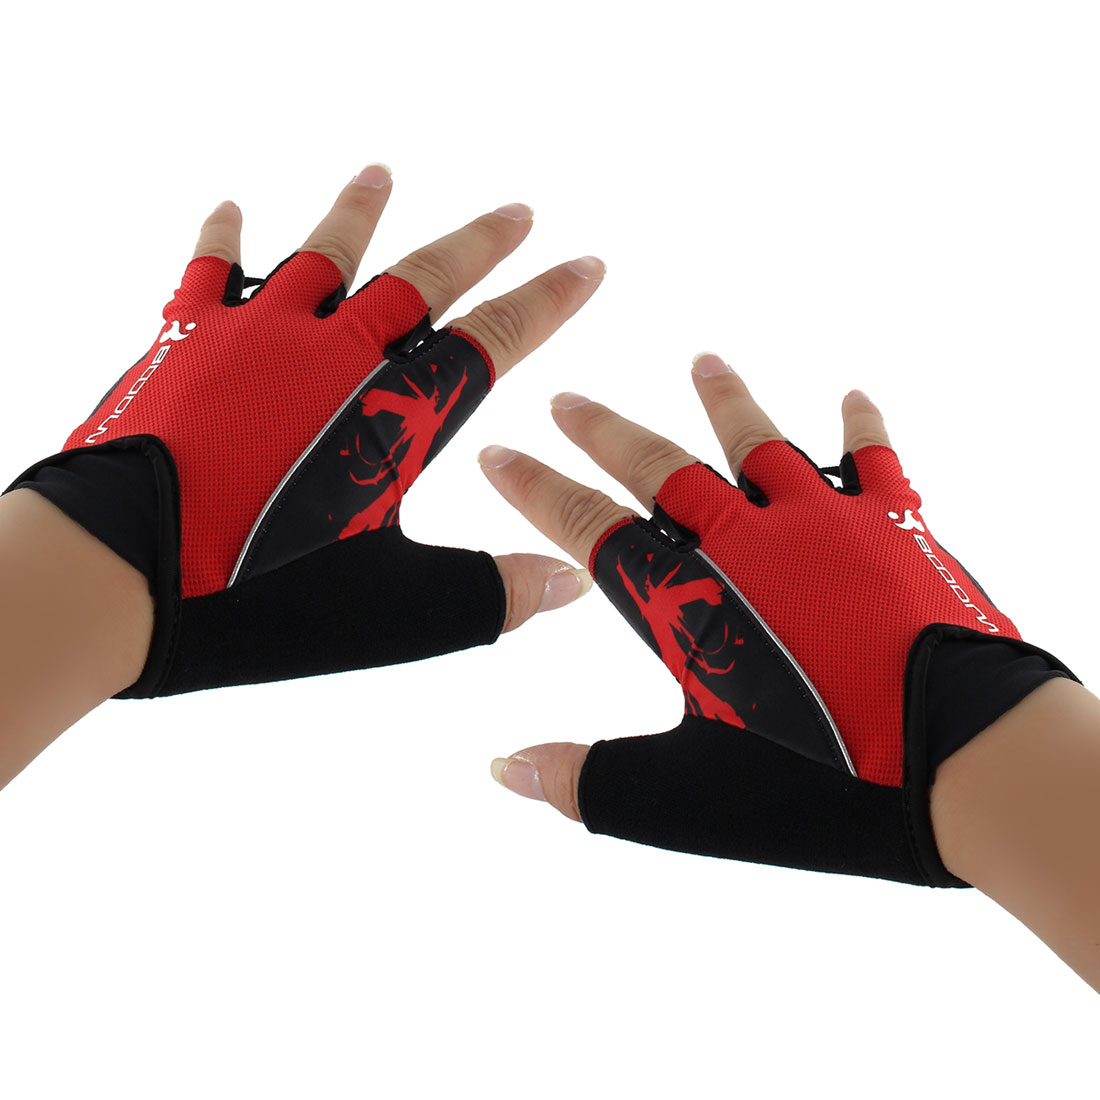 Polyester Exercise Sports Weightlifting Training Workout Protector Half Finger Fitness Gloves Red S Pair